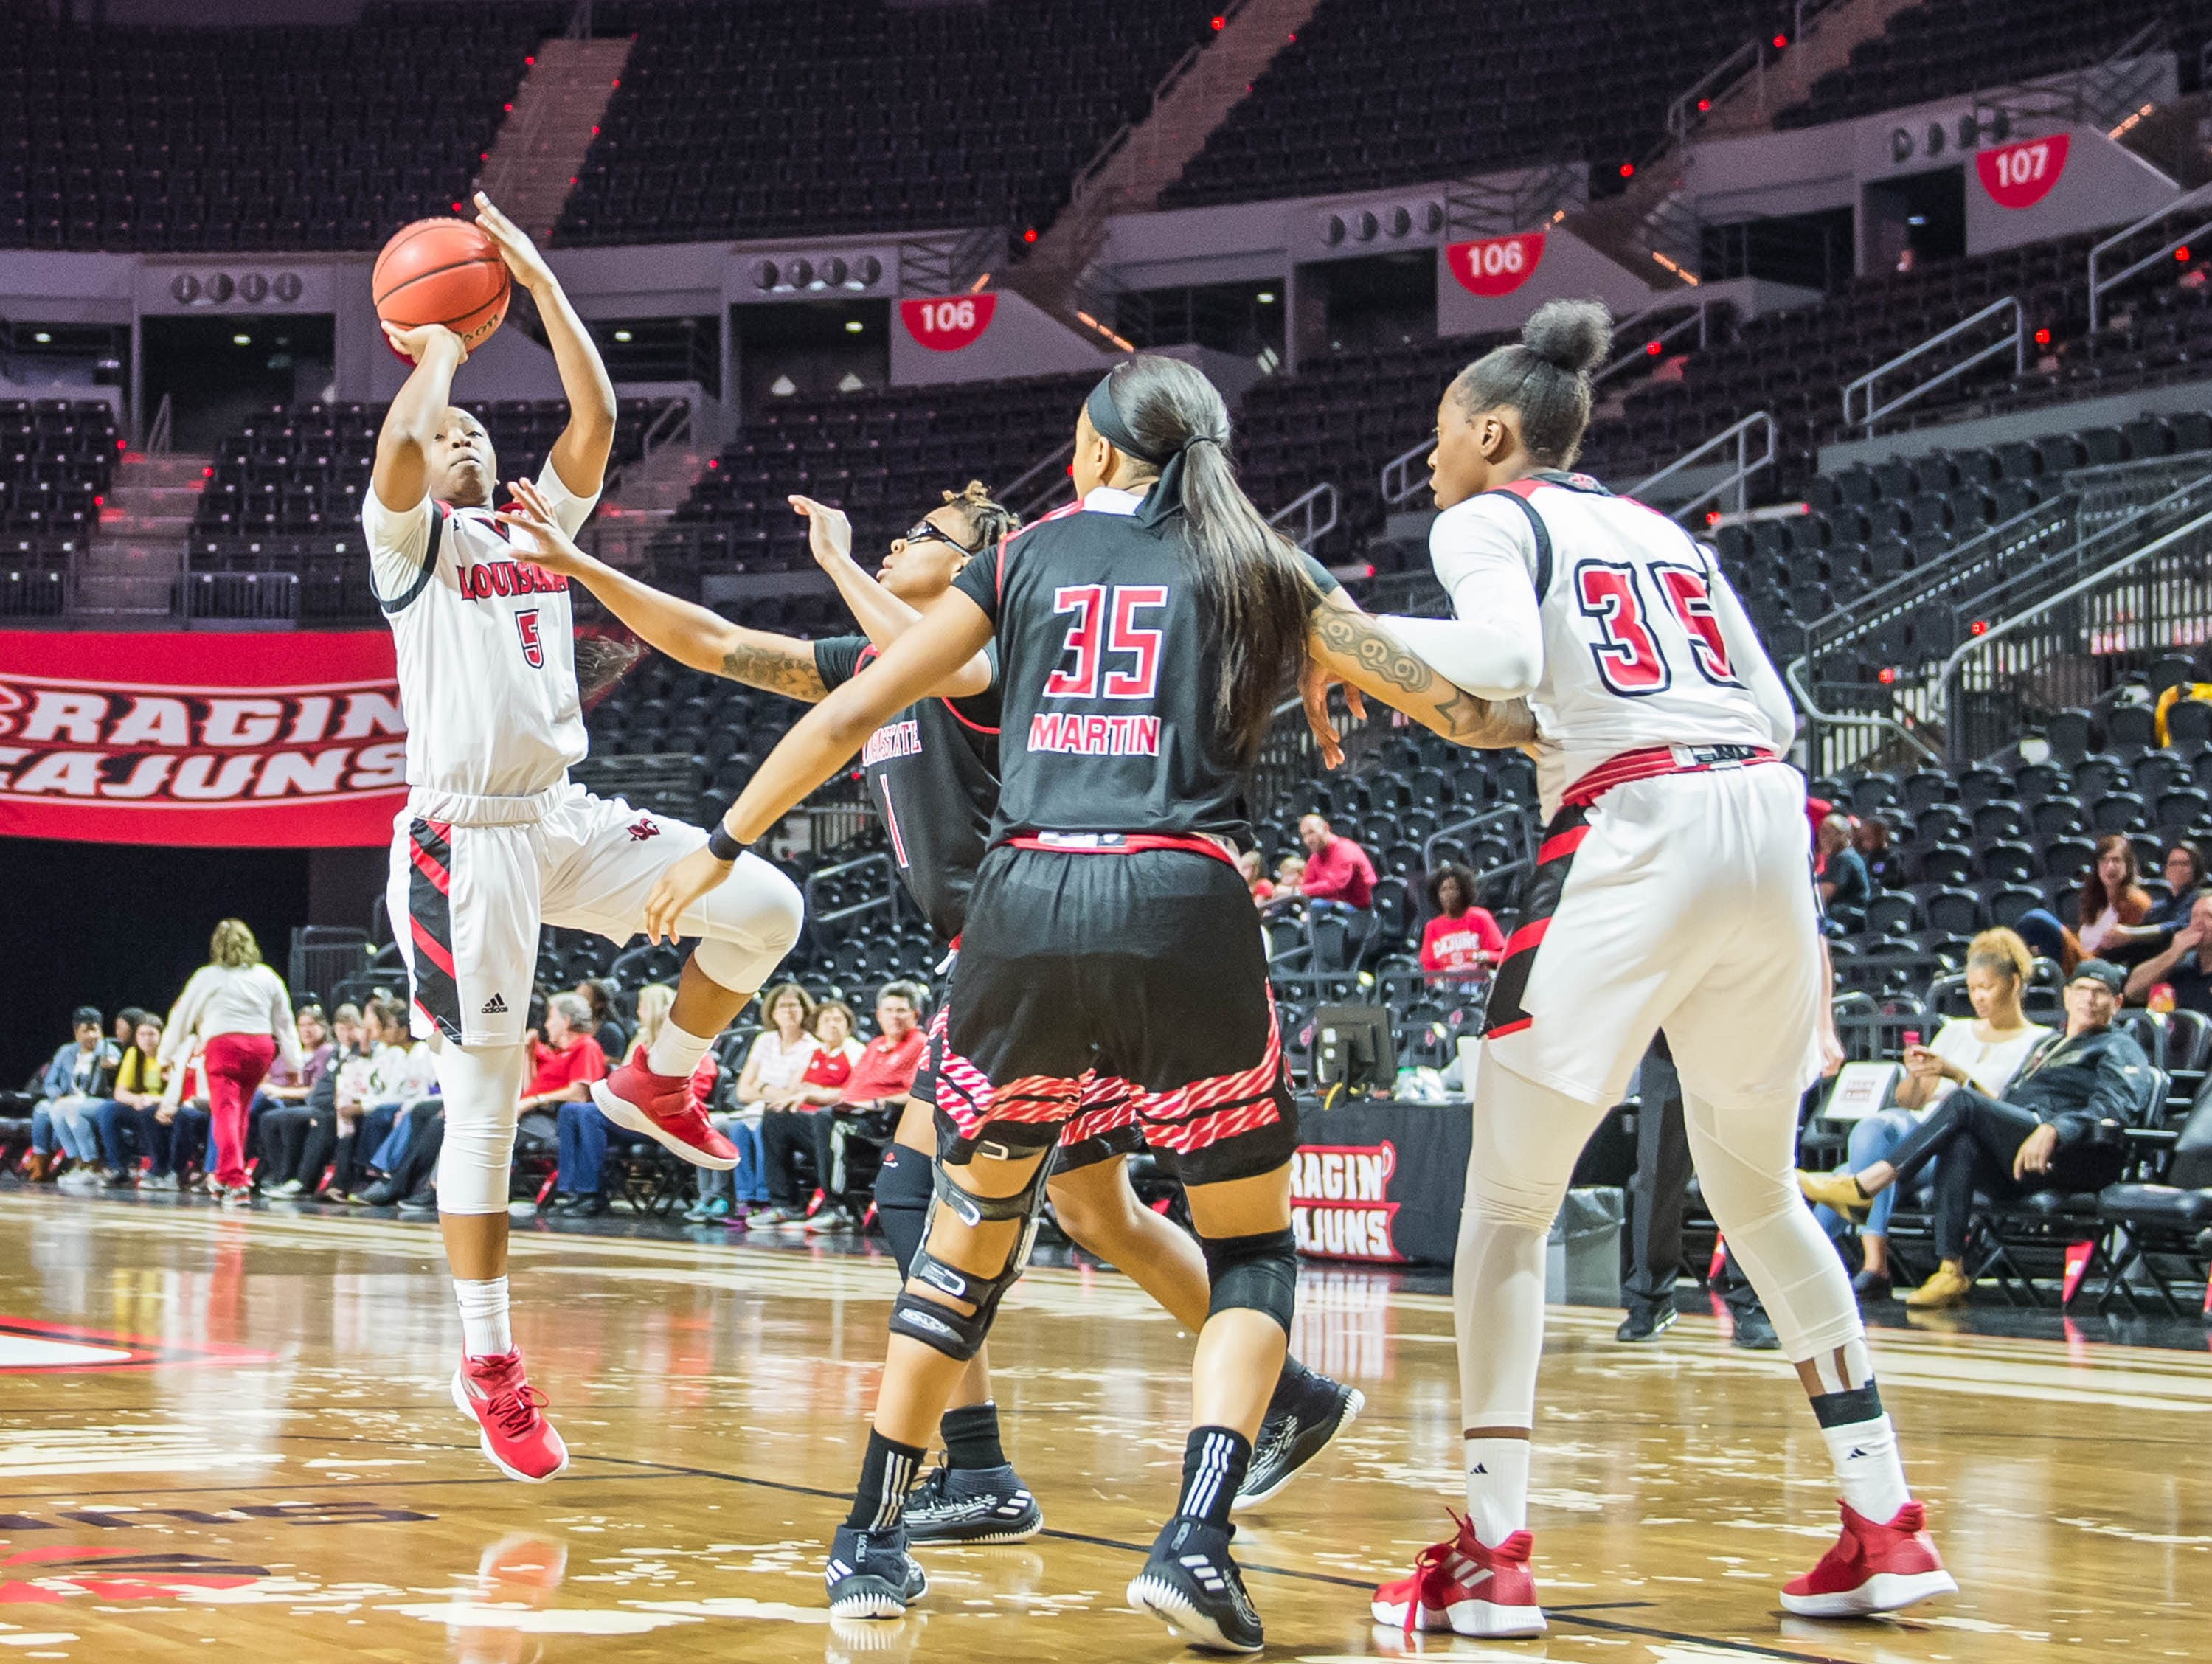 Ragin' Cajuns guard Jomyra Mathis (5) with the jump shot as the Cajuns women's basketball team plays the Arkansas State Red Wolves at the Cajundome on Saturday, March 9, 2019.